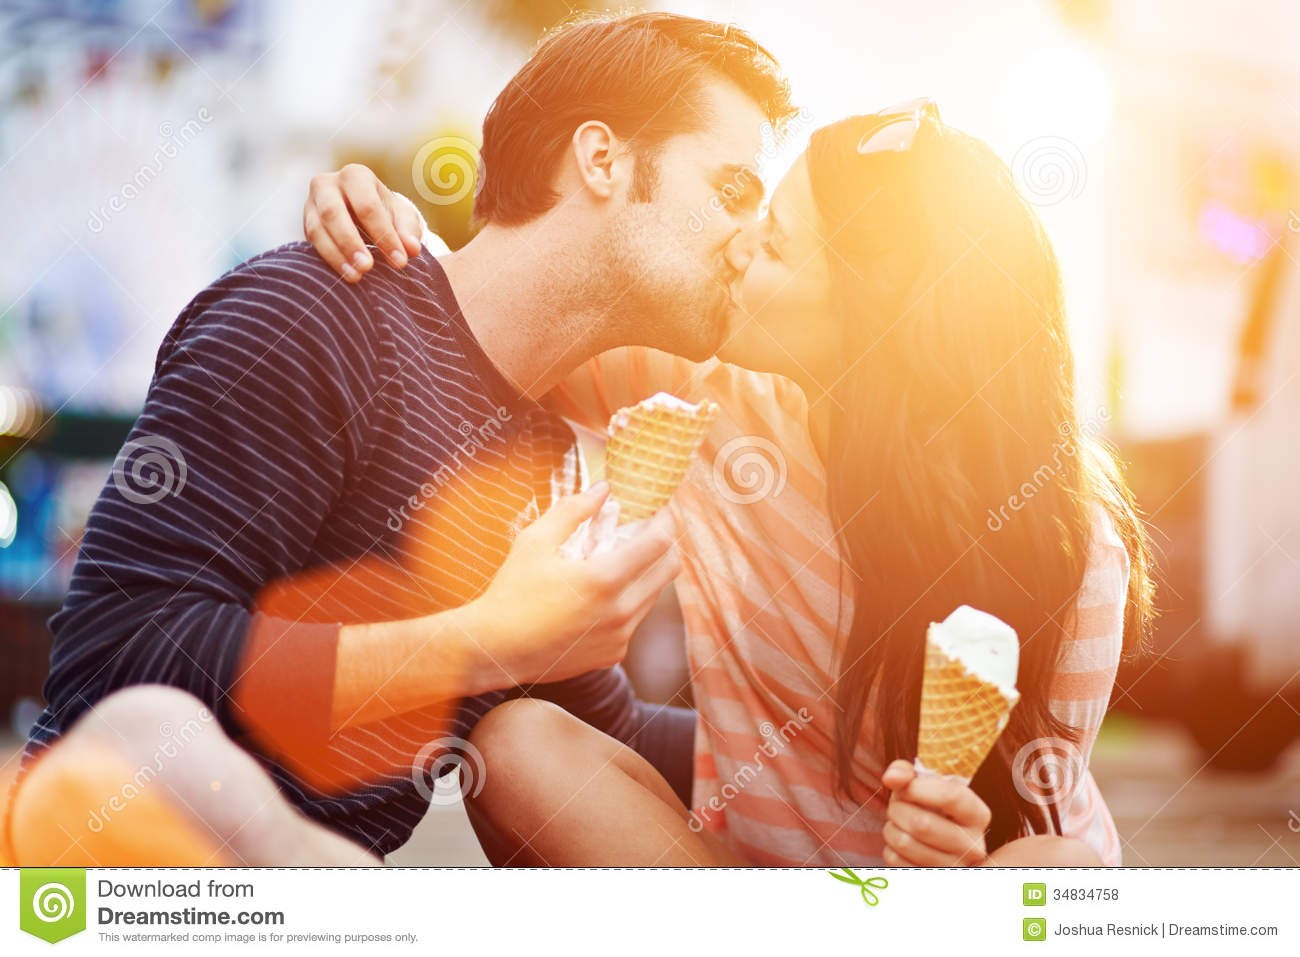 Romantic Couple Kissing While Holding Ice Cream Royalty Free Stock.